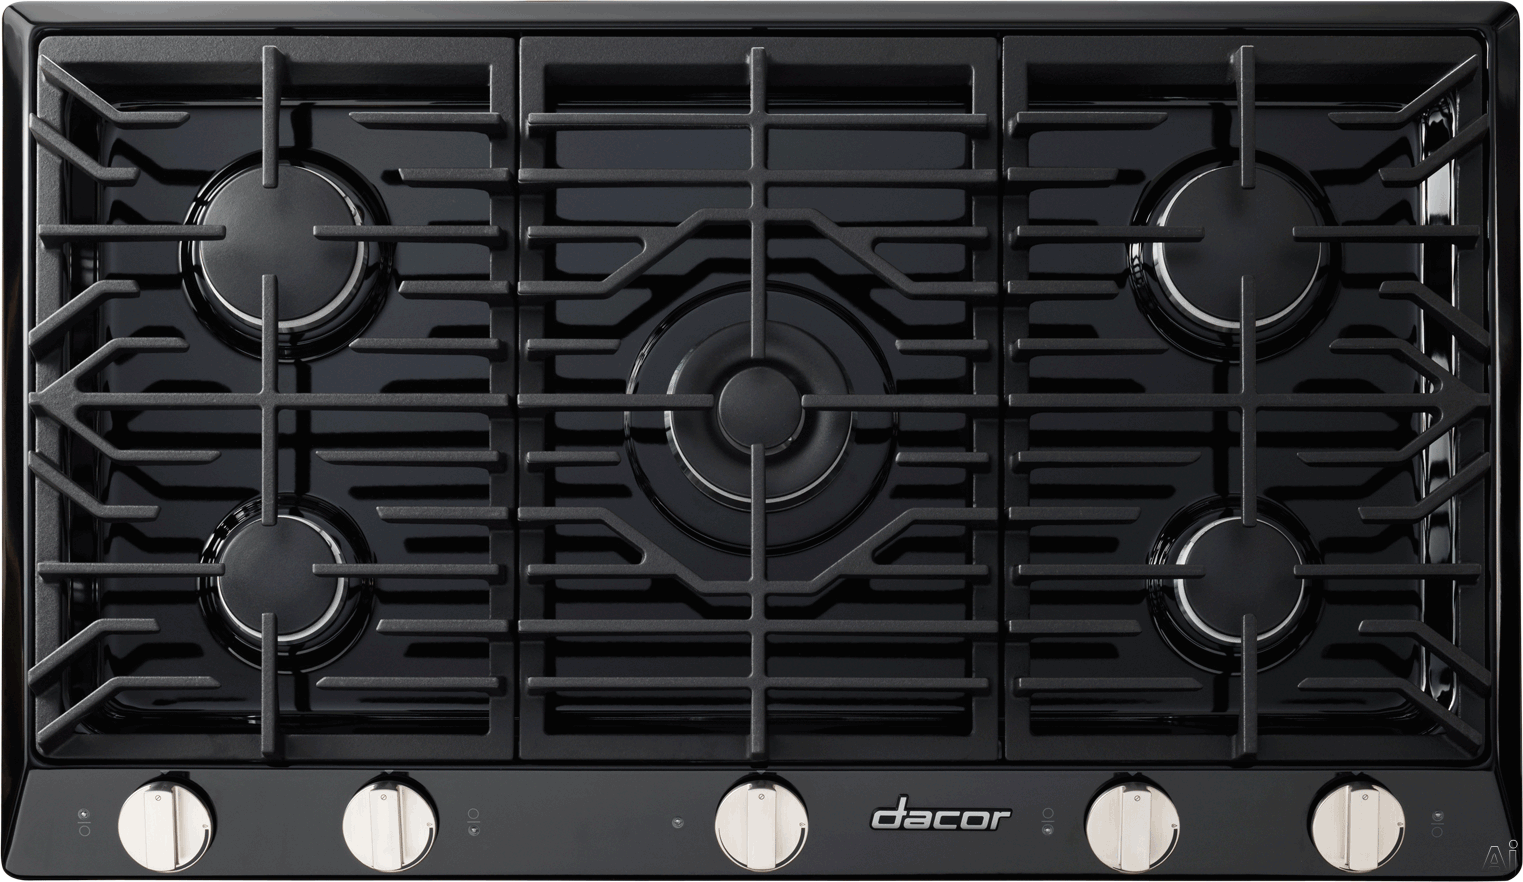 Dacor Renaissance RNCT305GBLP 30 Inch Gas Cooktop with 5 Sealed Burners, SimmerSear Burner w/ Melting Feature, Continuous Grates, Perma-Flame Ignition, Smart Flame Technology, One Piece Spill Basin, Illumina Indicator Lights and Downdraft Compatible: Blac